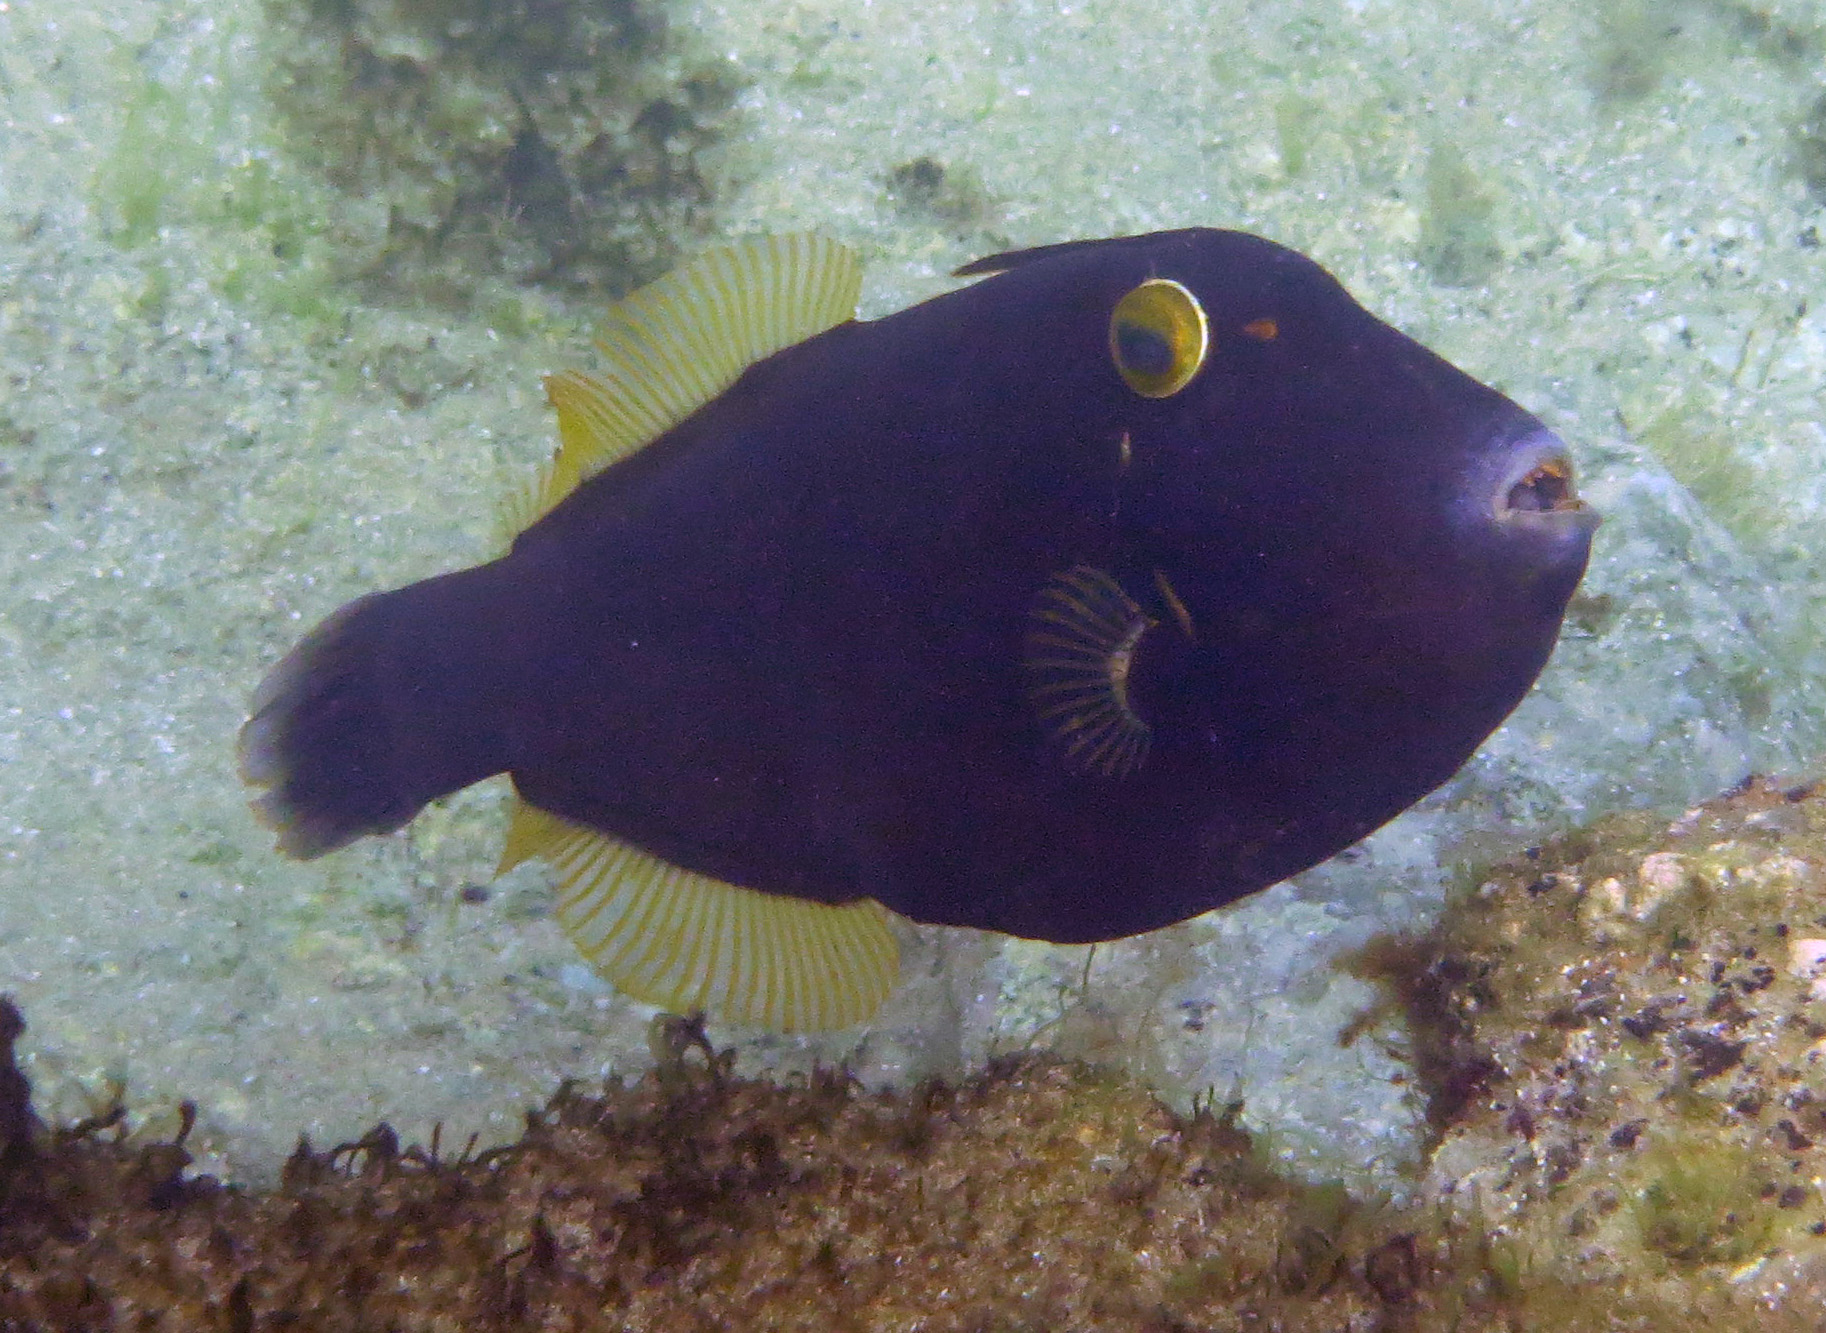 Black Reef Leatherjacket (Eubalichthys bucephalus)  spotted by Danie Ondinae  Photo Robyn Wimbush